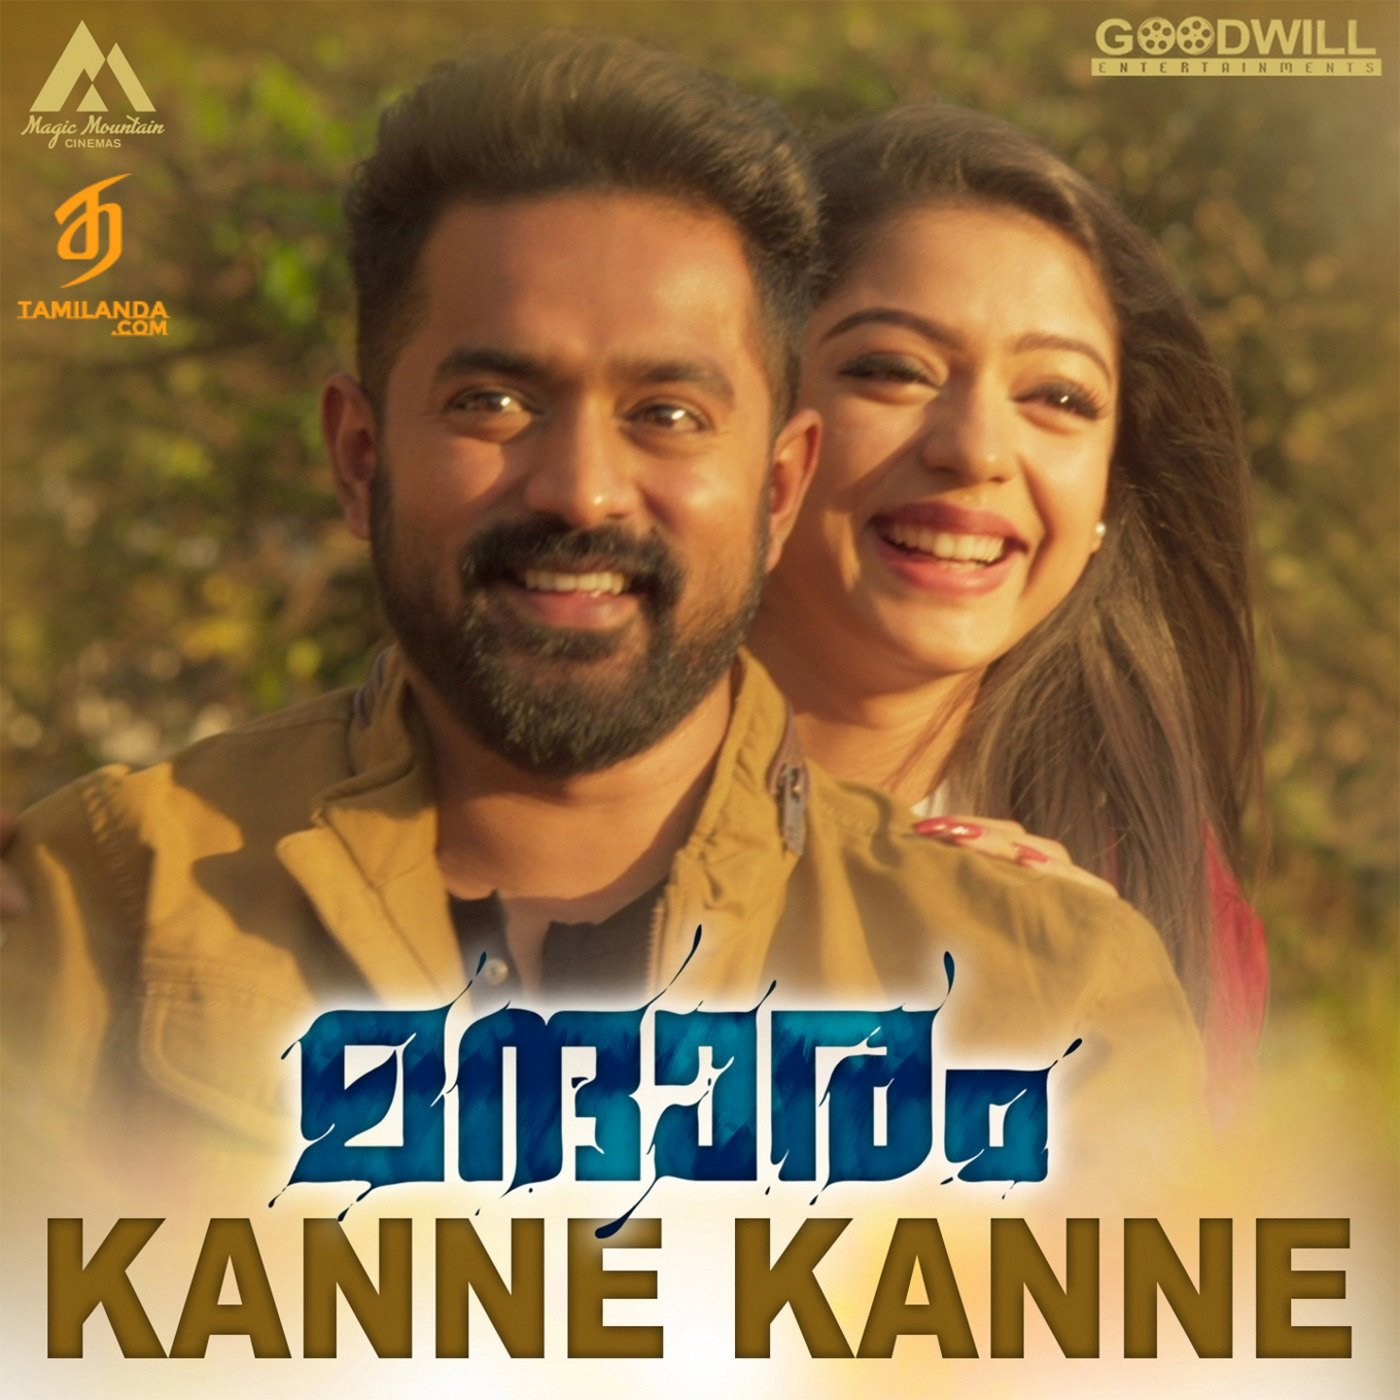 Kanne Kanne (From Mandharam) – Single FLAC Song